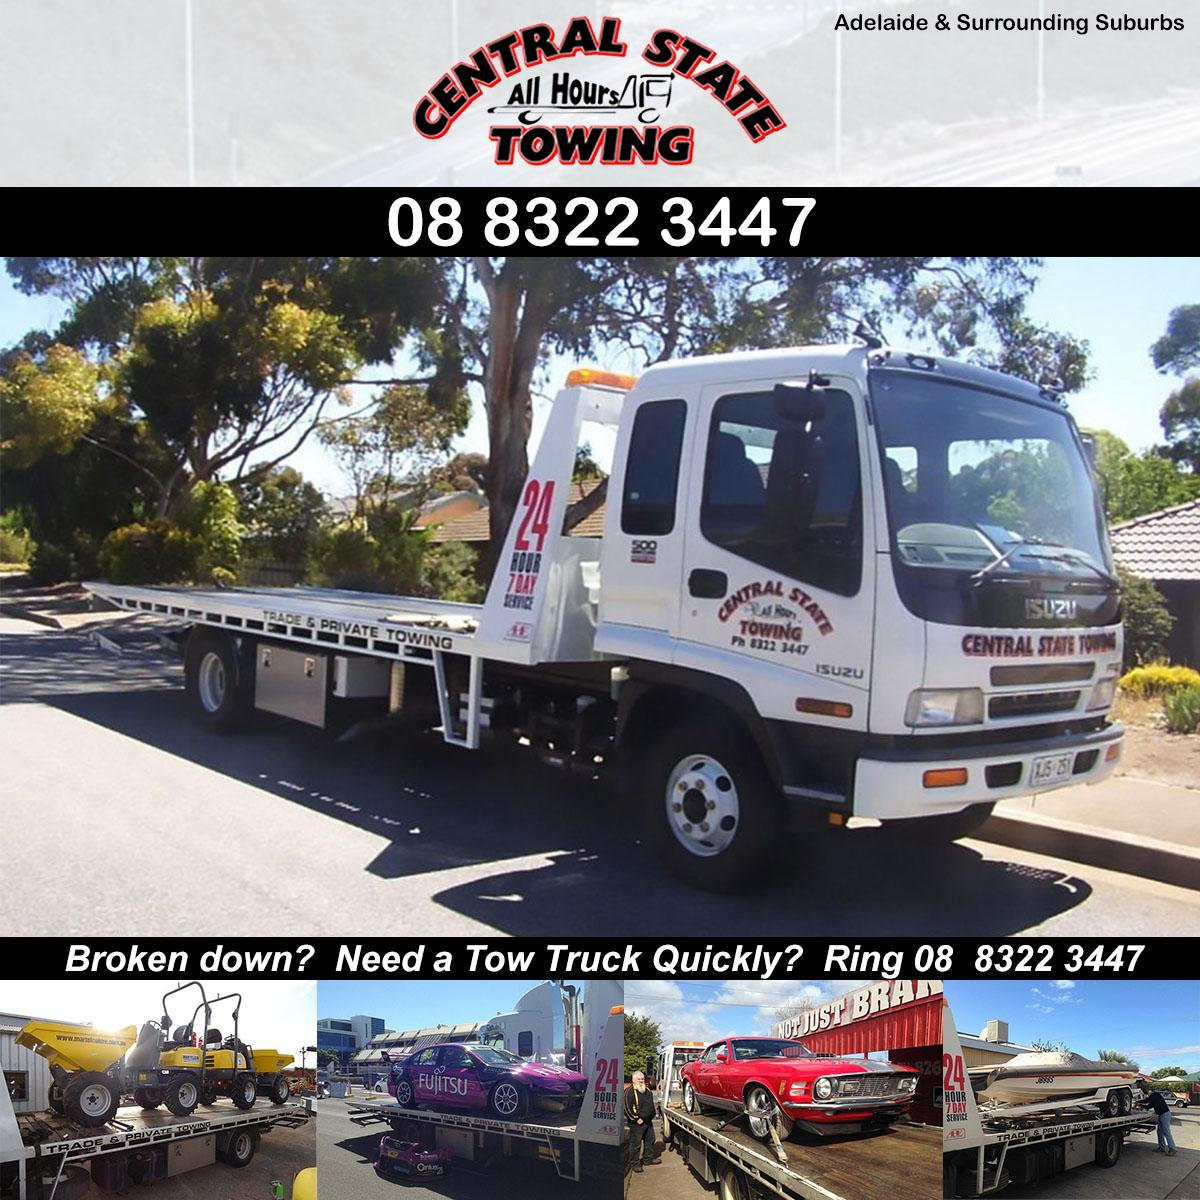 Car Towing Adelaide Prices